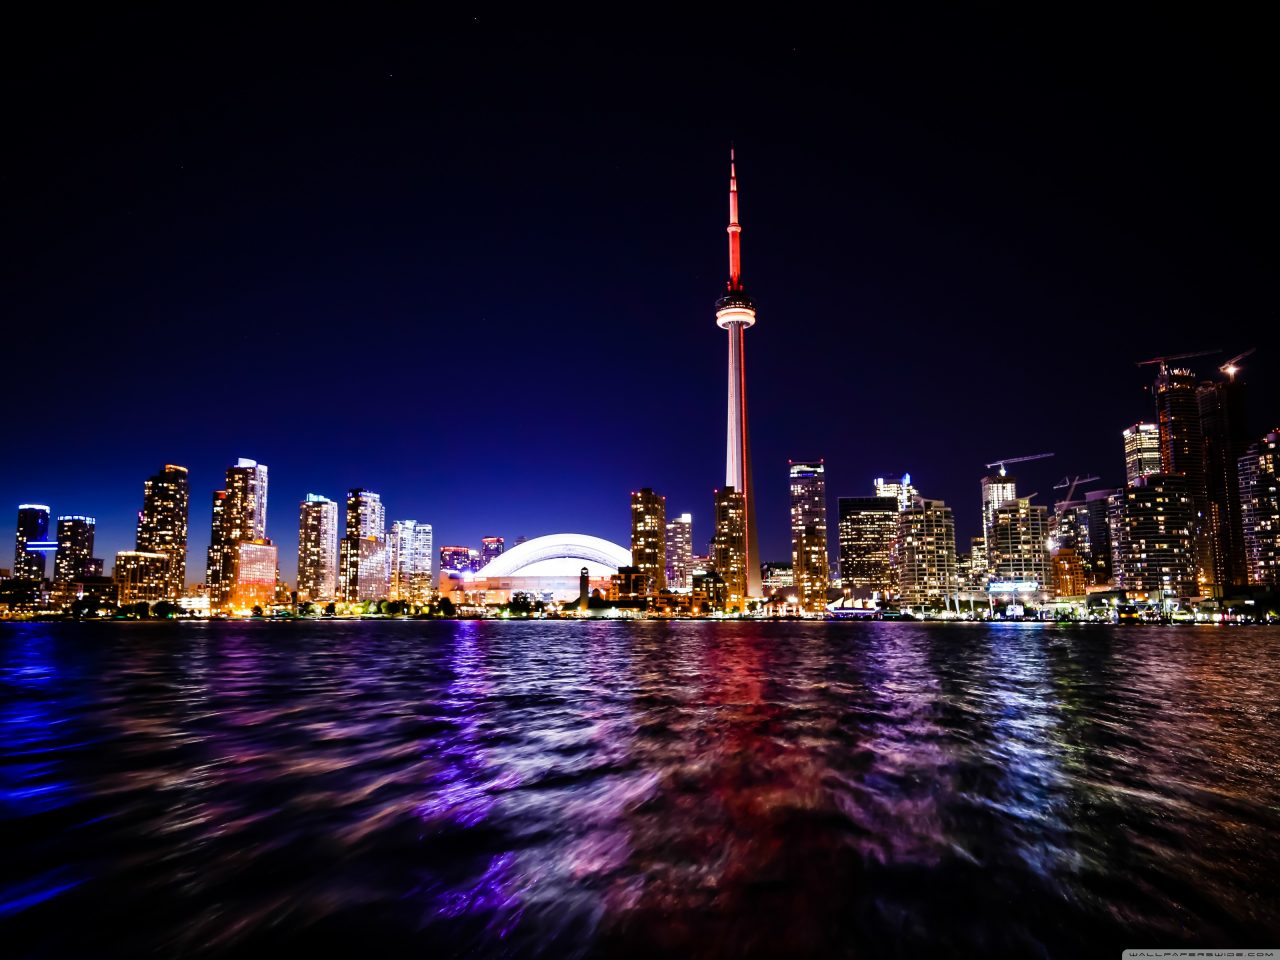 downtown_toronto-wallpaper-3200x2400-1280x960.jpg